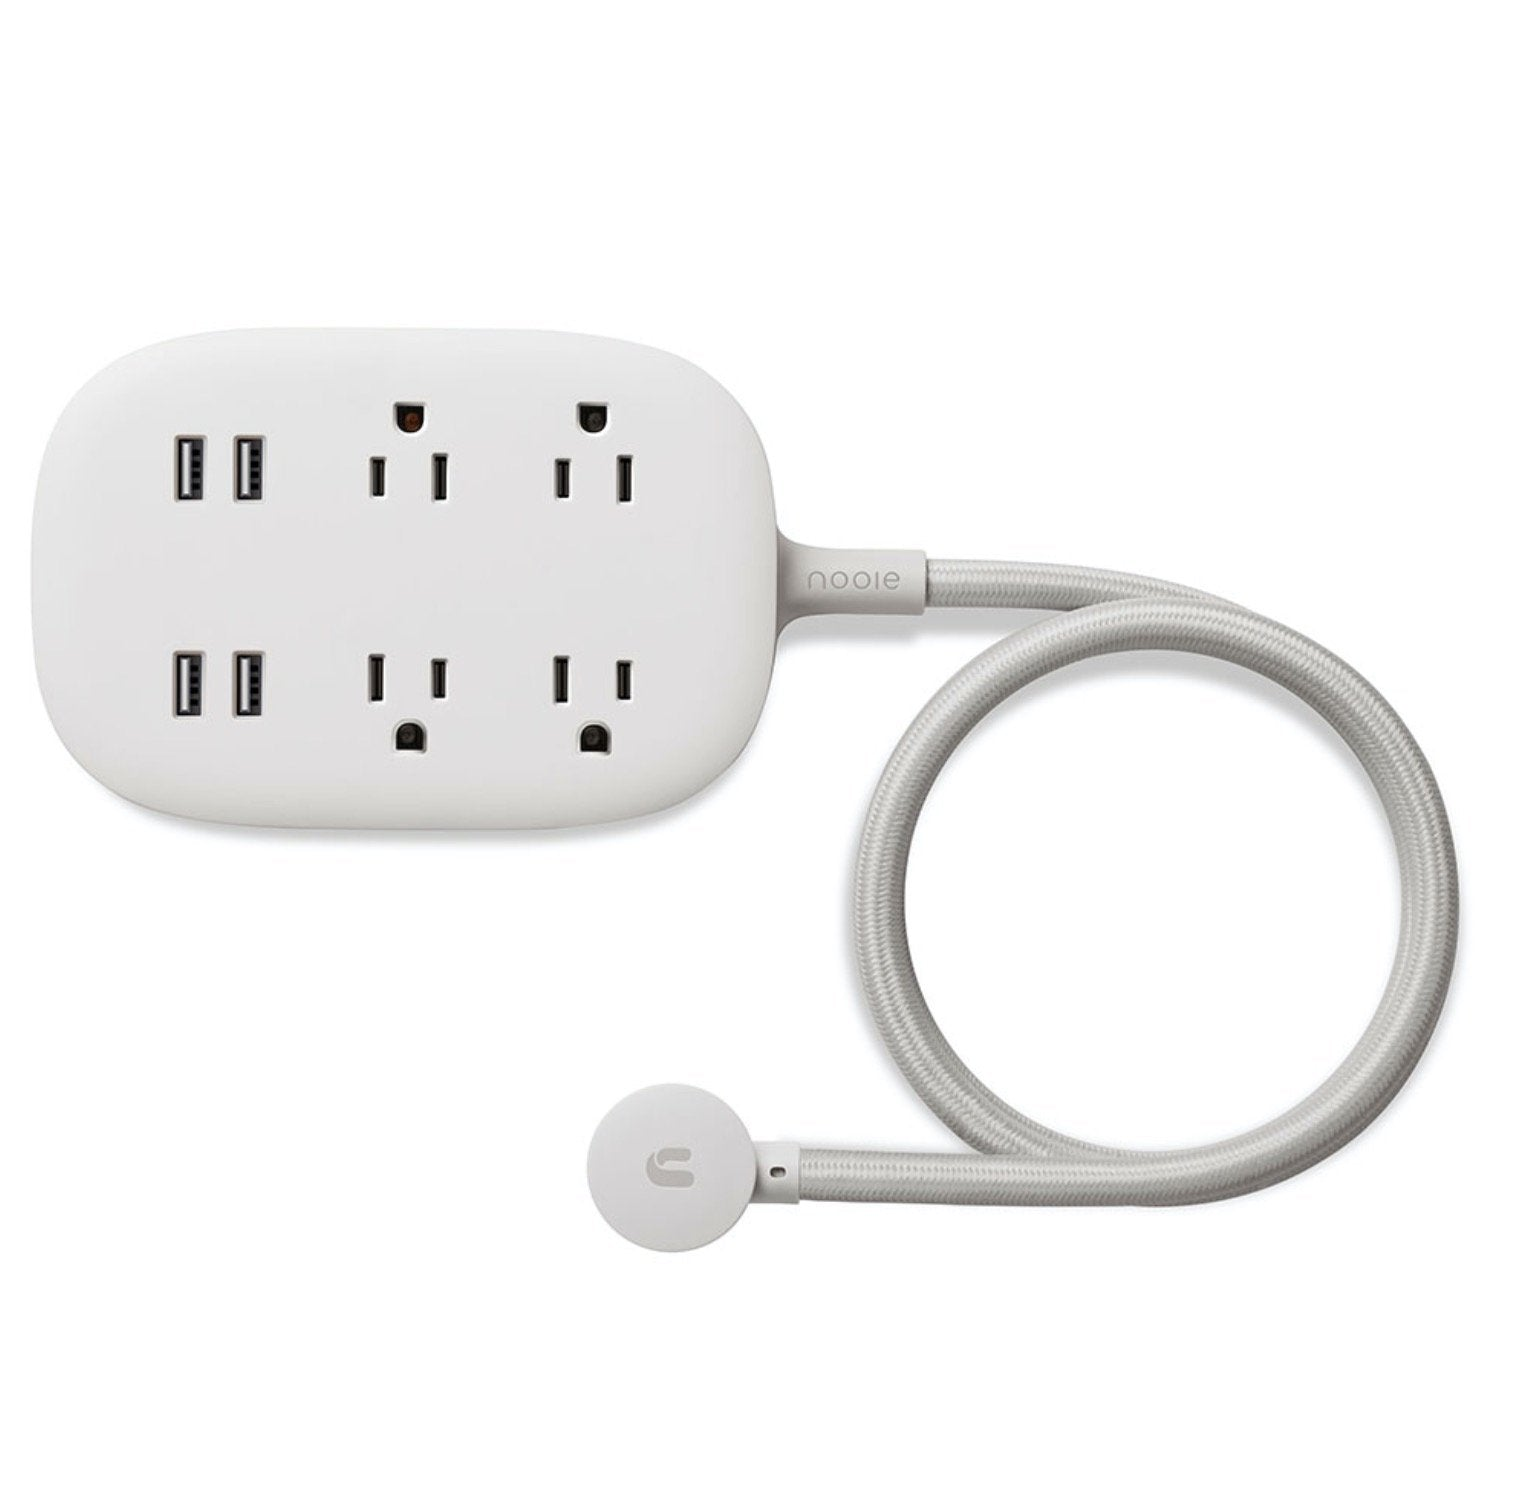 Nooie Smart Power Strip-Smart Power Strip-Nooie-US-Nooie Smart Home